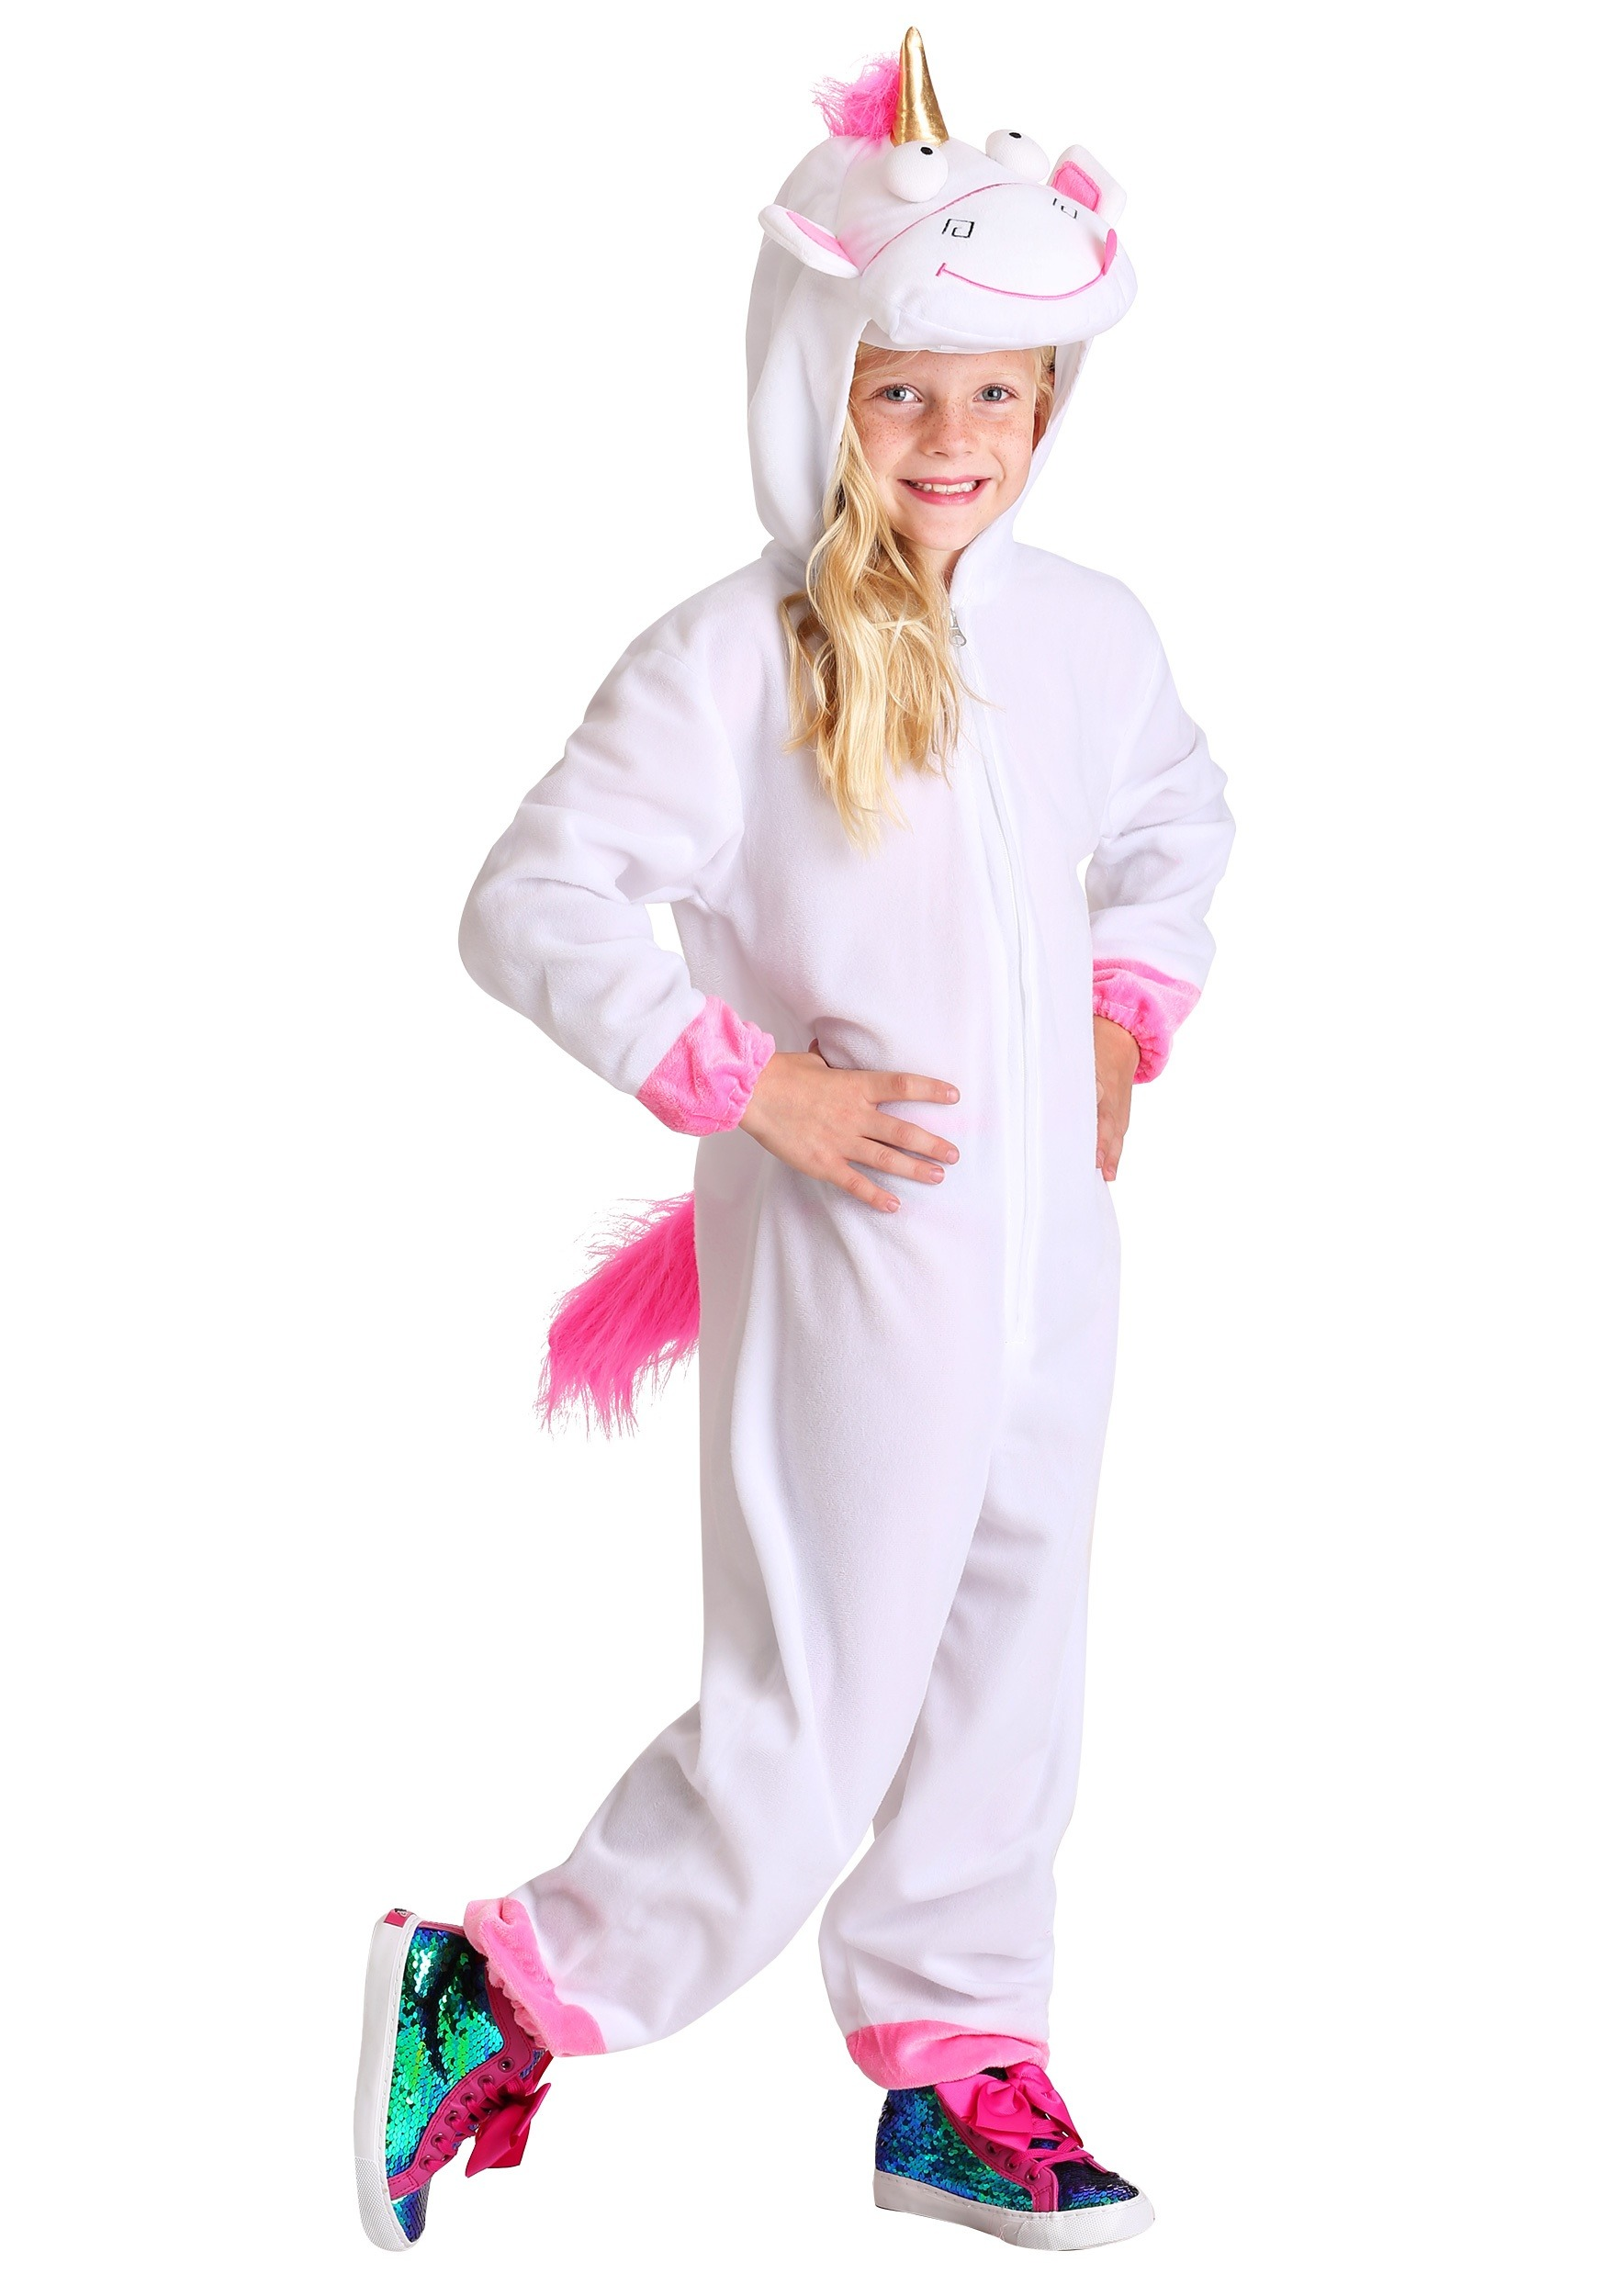 Minions Fluffy Unicorn Costume for Girls